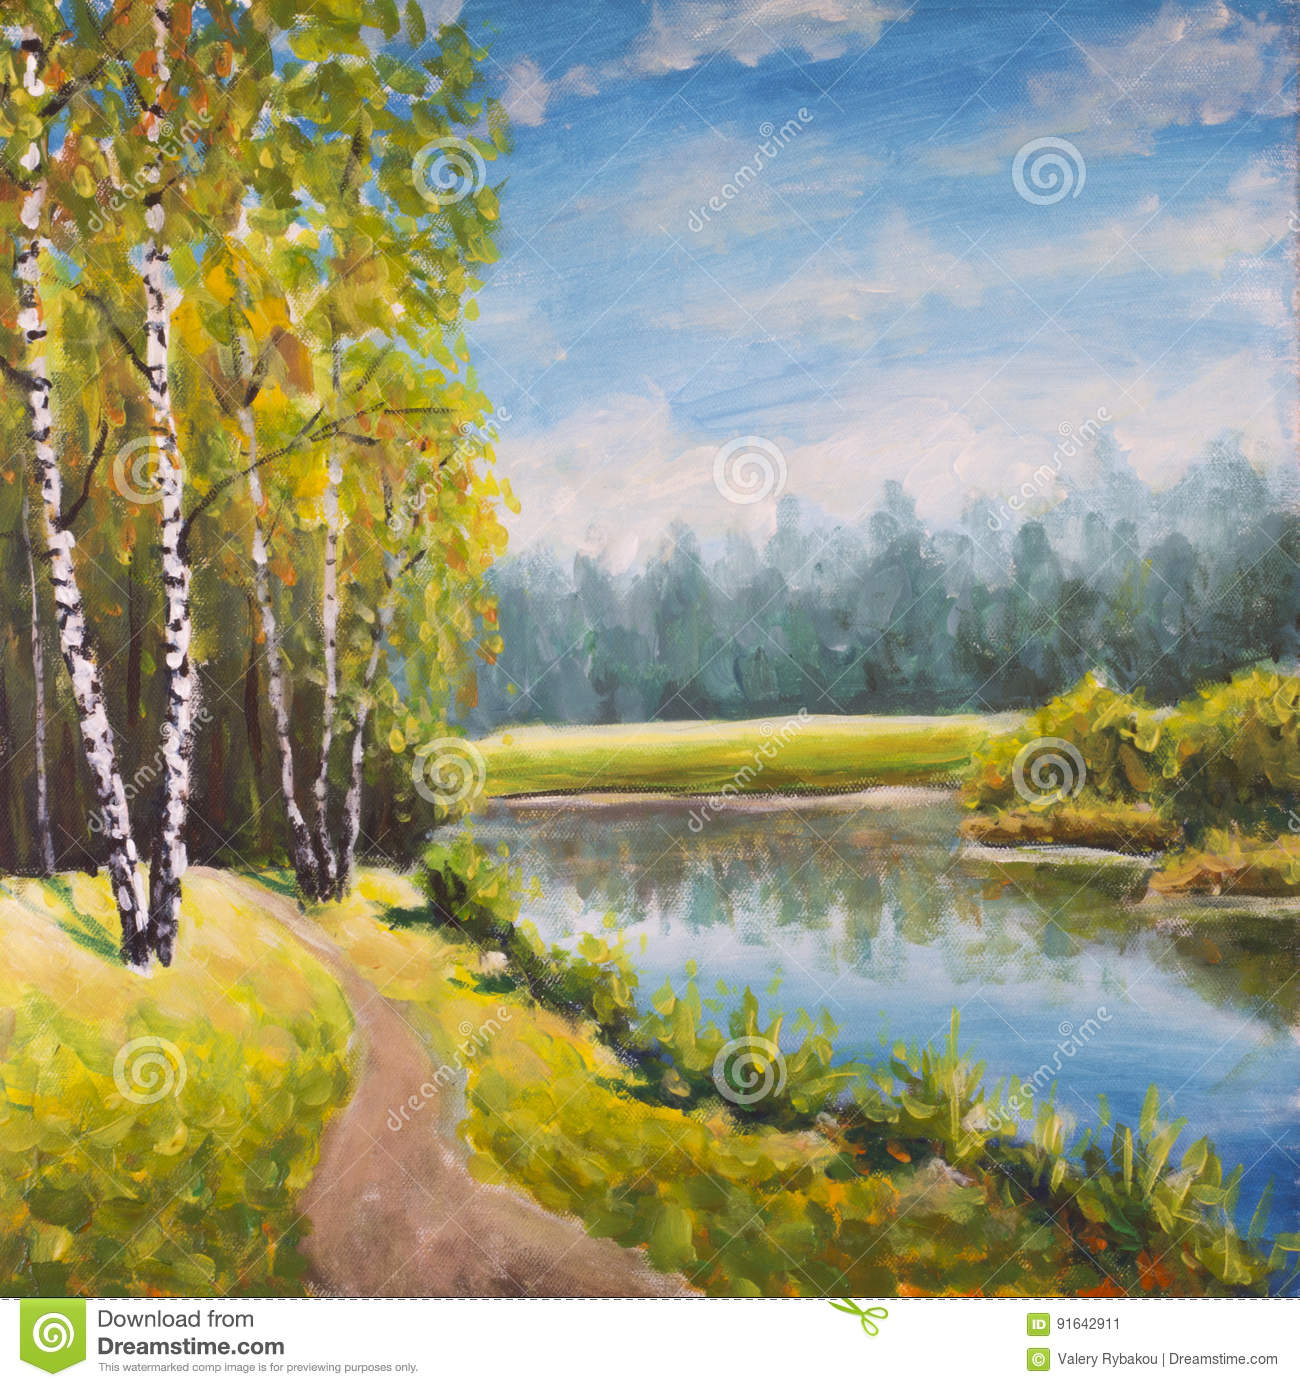 Download Original Oil Painting  Summer Landscape, Sunny Nature On Canvas. Beautiful Far Forest, Rural Landscape Landscape. Modern Impressio Stock Image - Image of road, sunny: 91642911